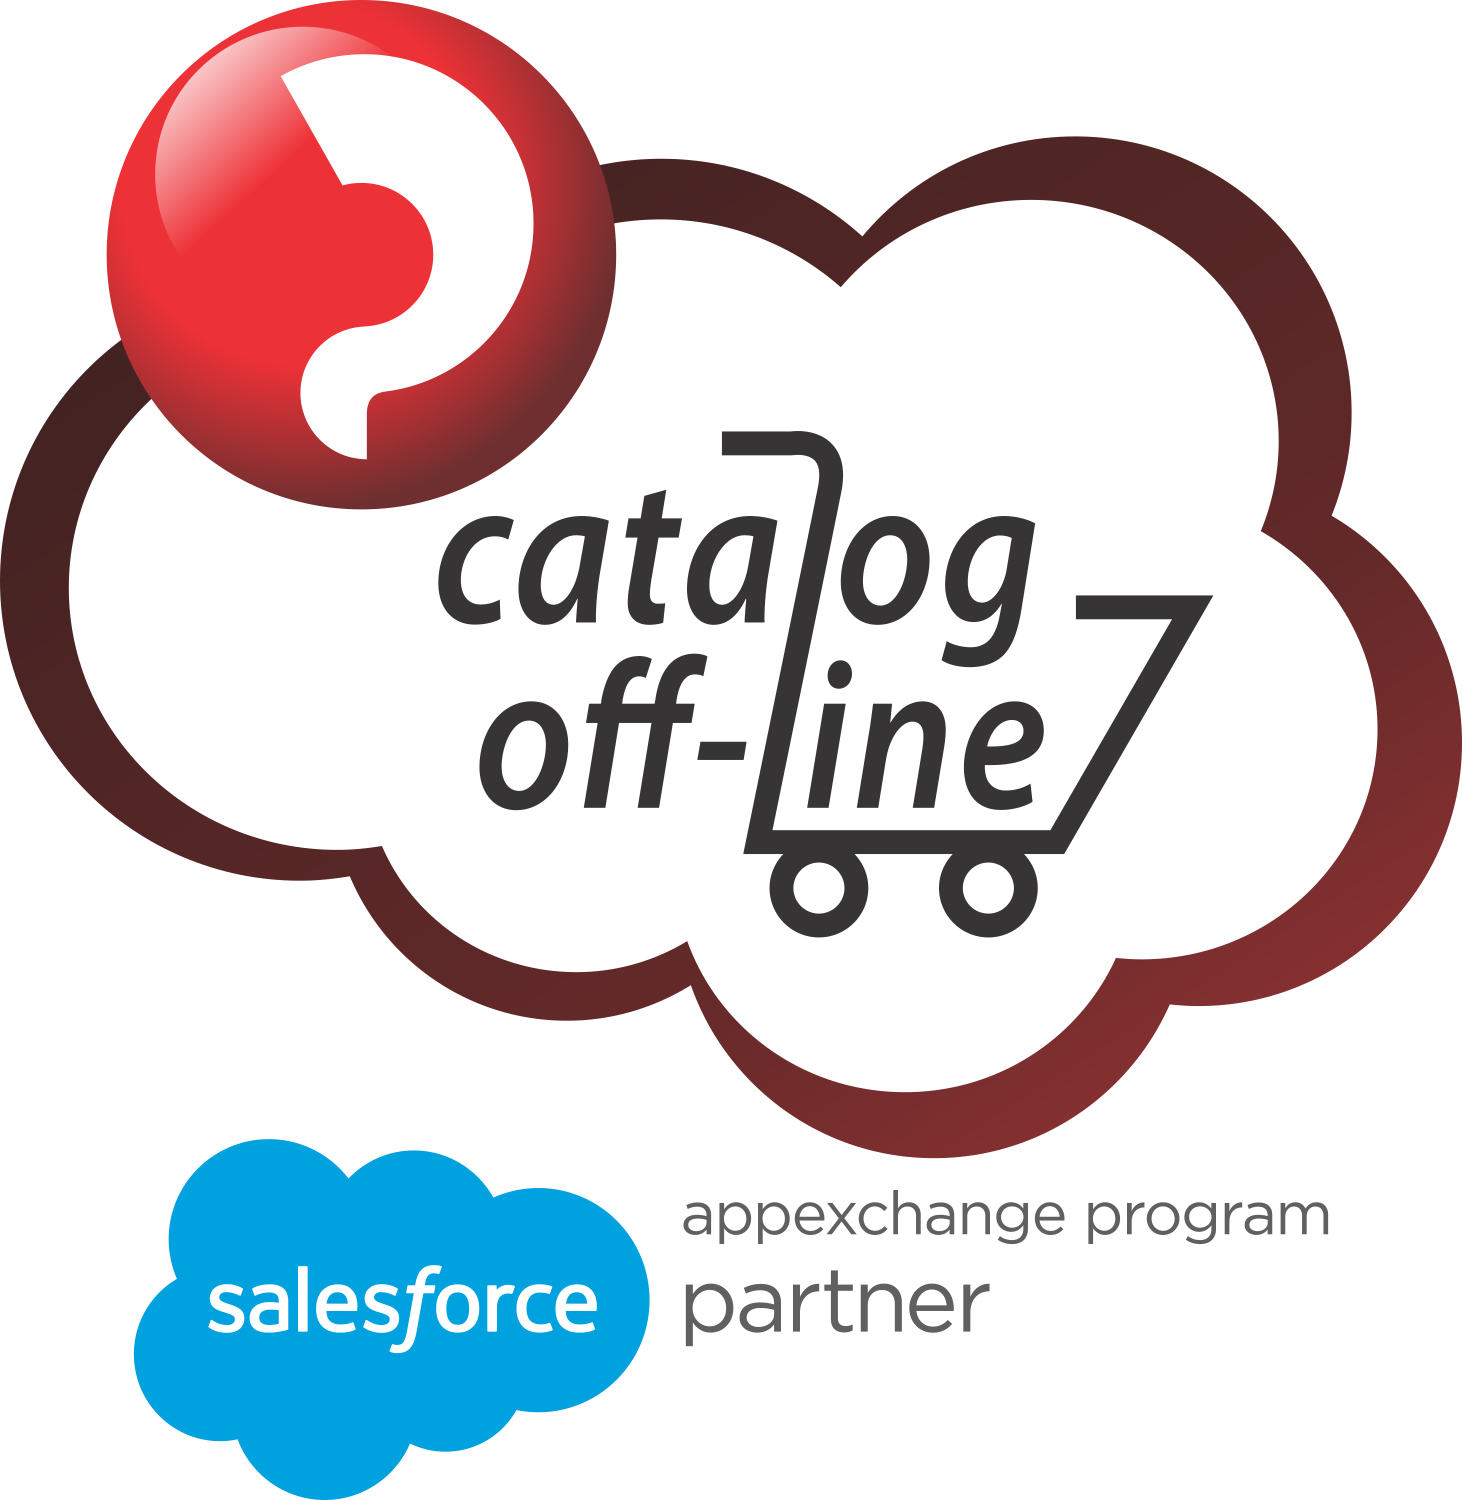 logo_catalog-offline_preto_salesforce